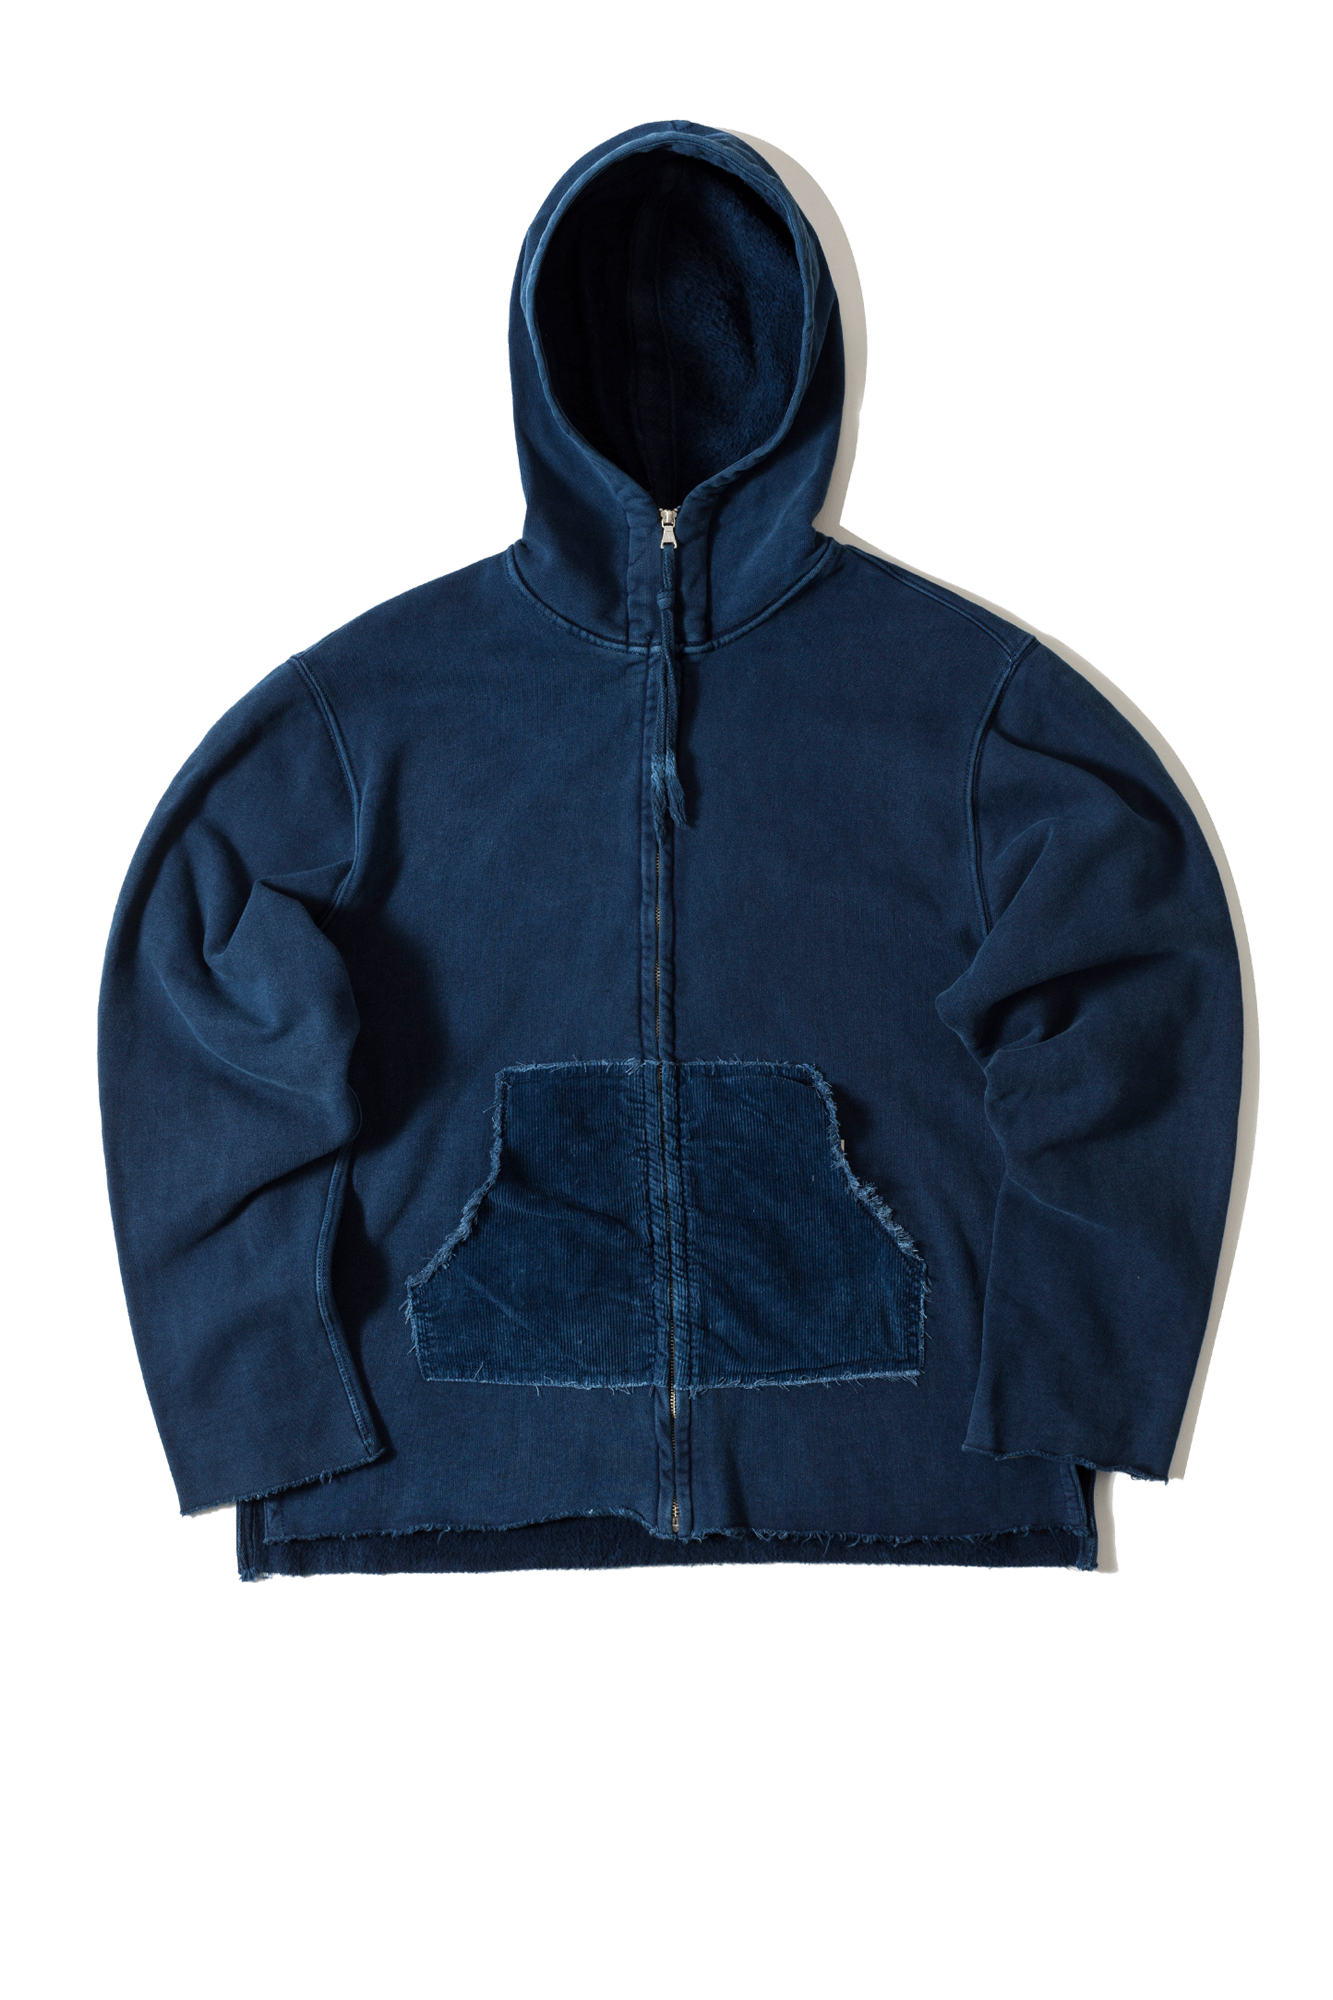 Dr. Collectors Felpe N1 Hood Heavy Fleece Blu SWEATN1#000#INDIGO#L - One Block Down